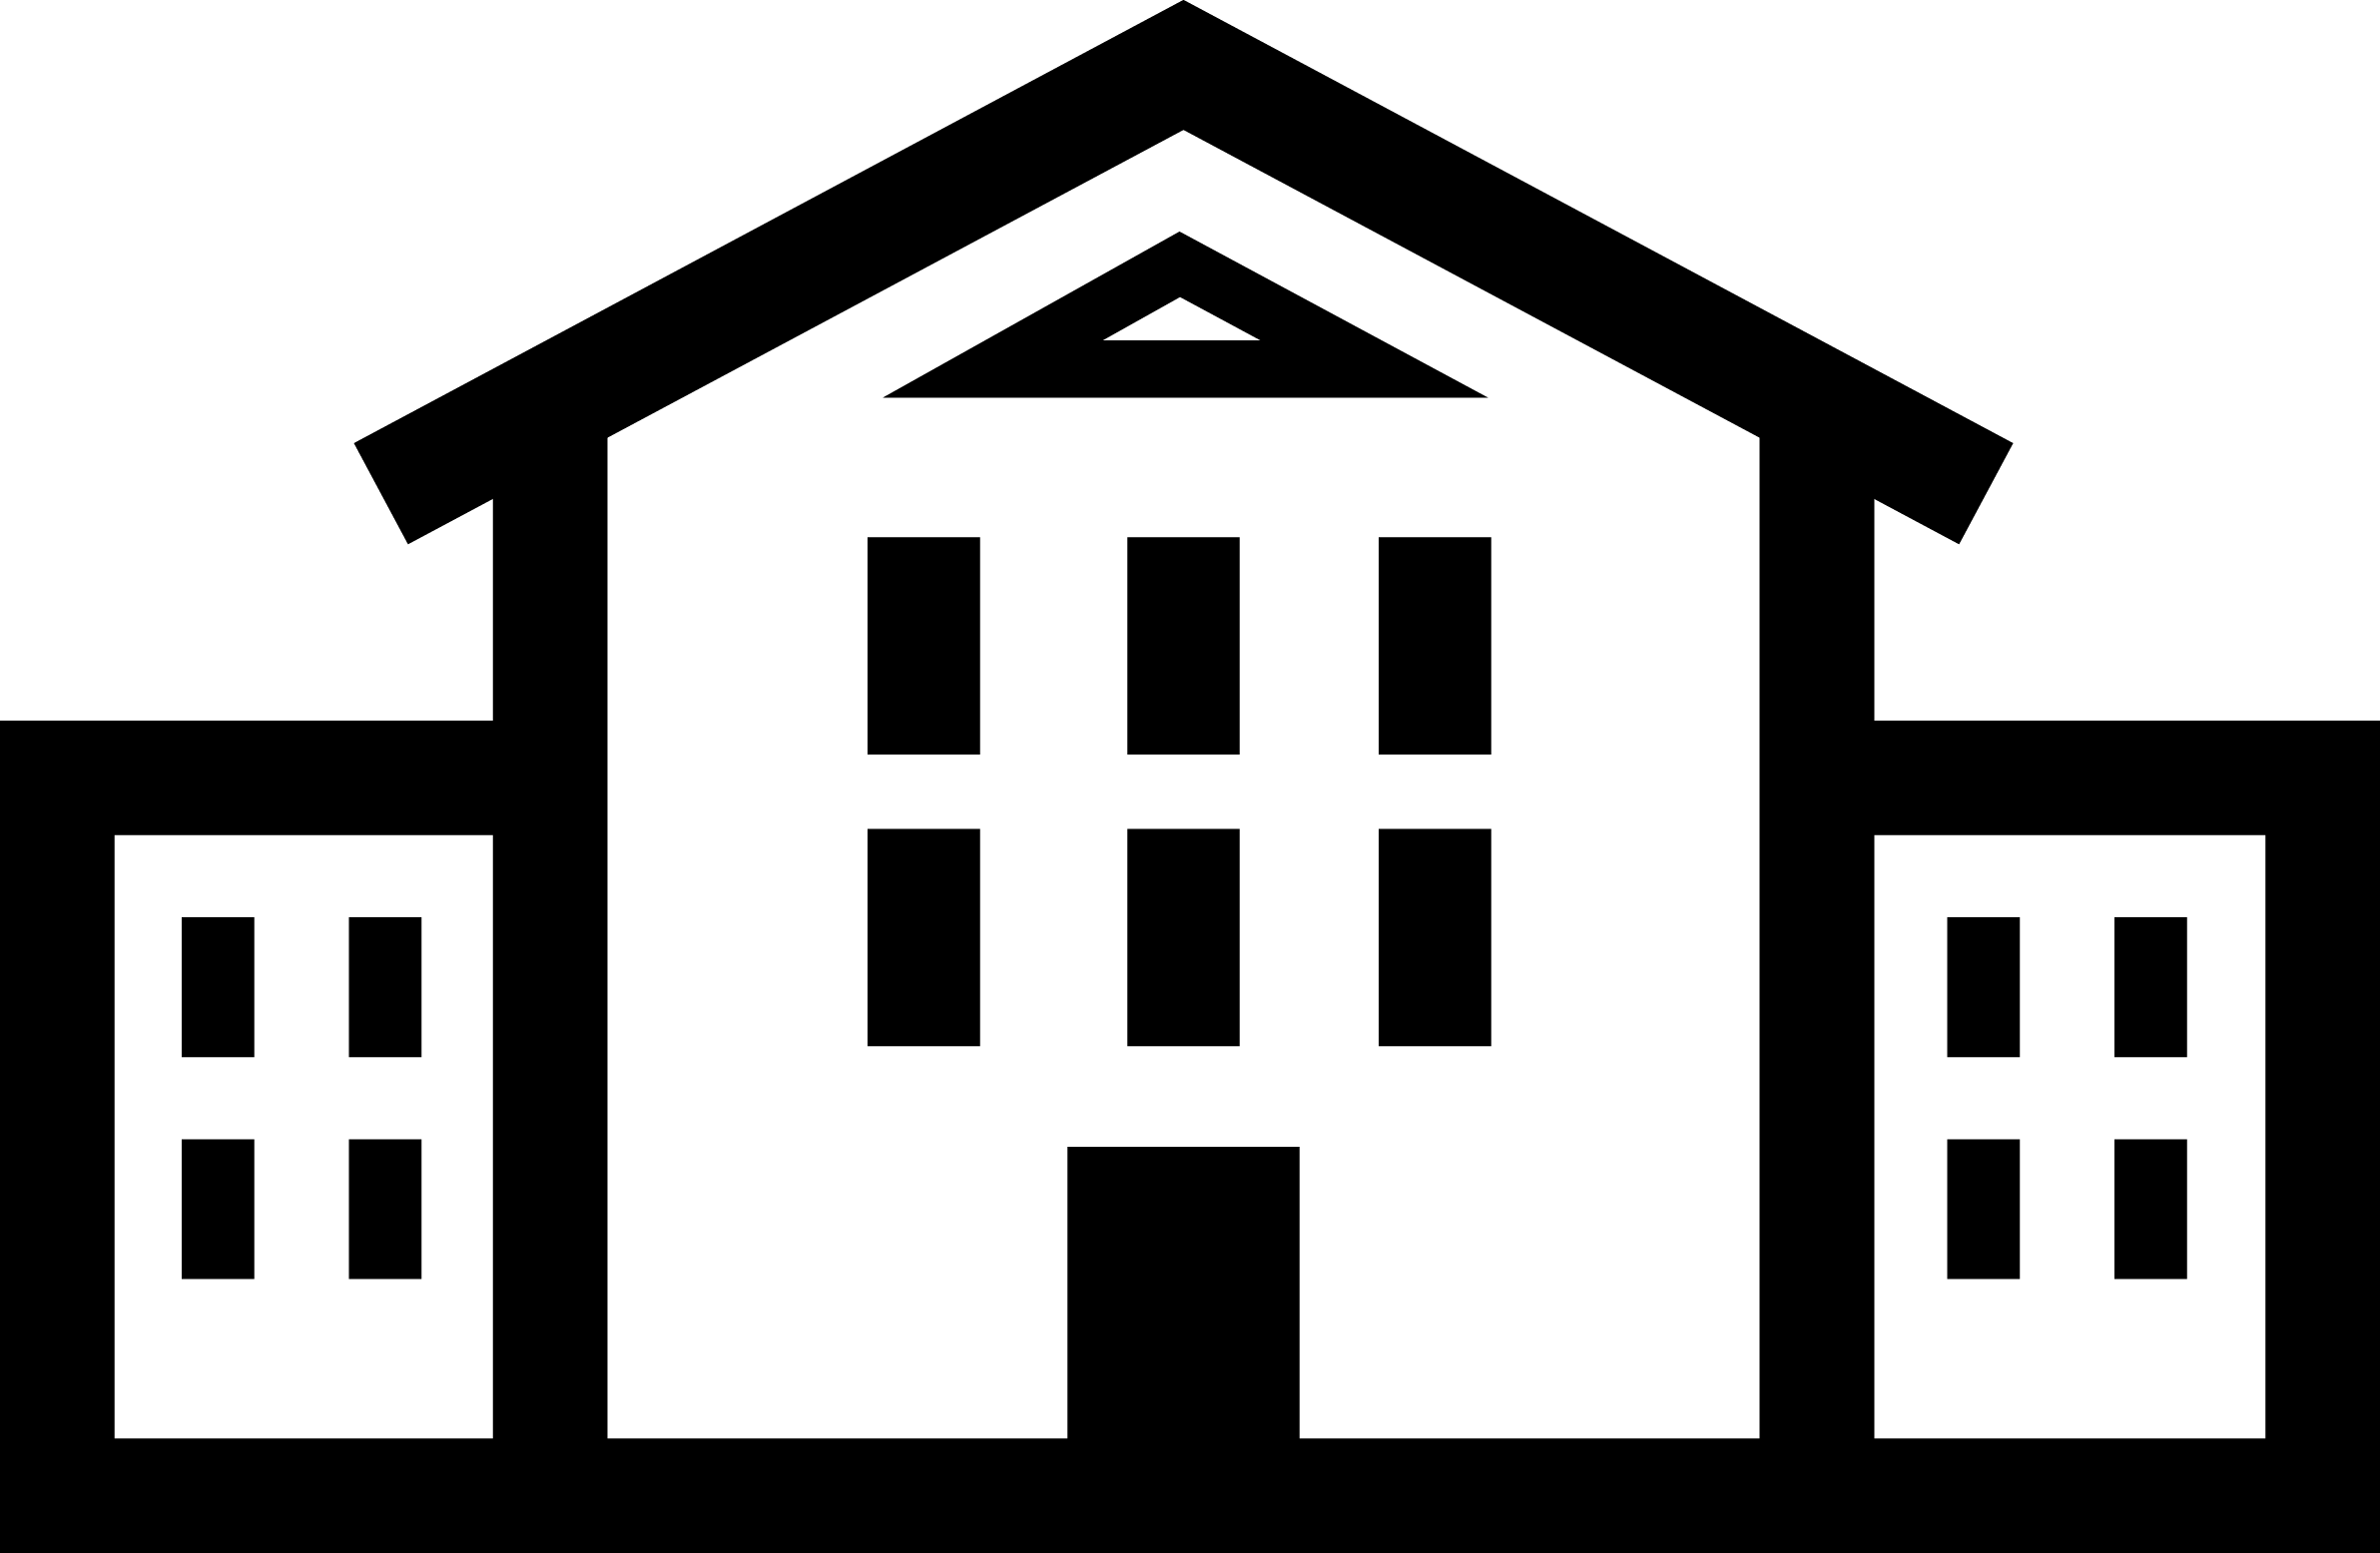 School house black and white clipart jpg transparent download Legacy of Educational Excellence (LEE) High School / LEE High School ... jpg transparent download